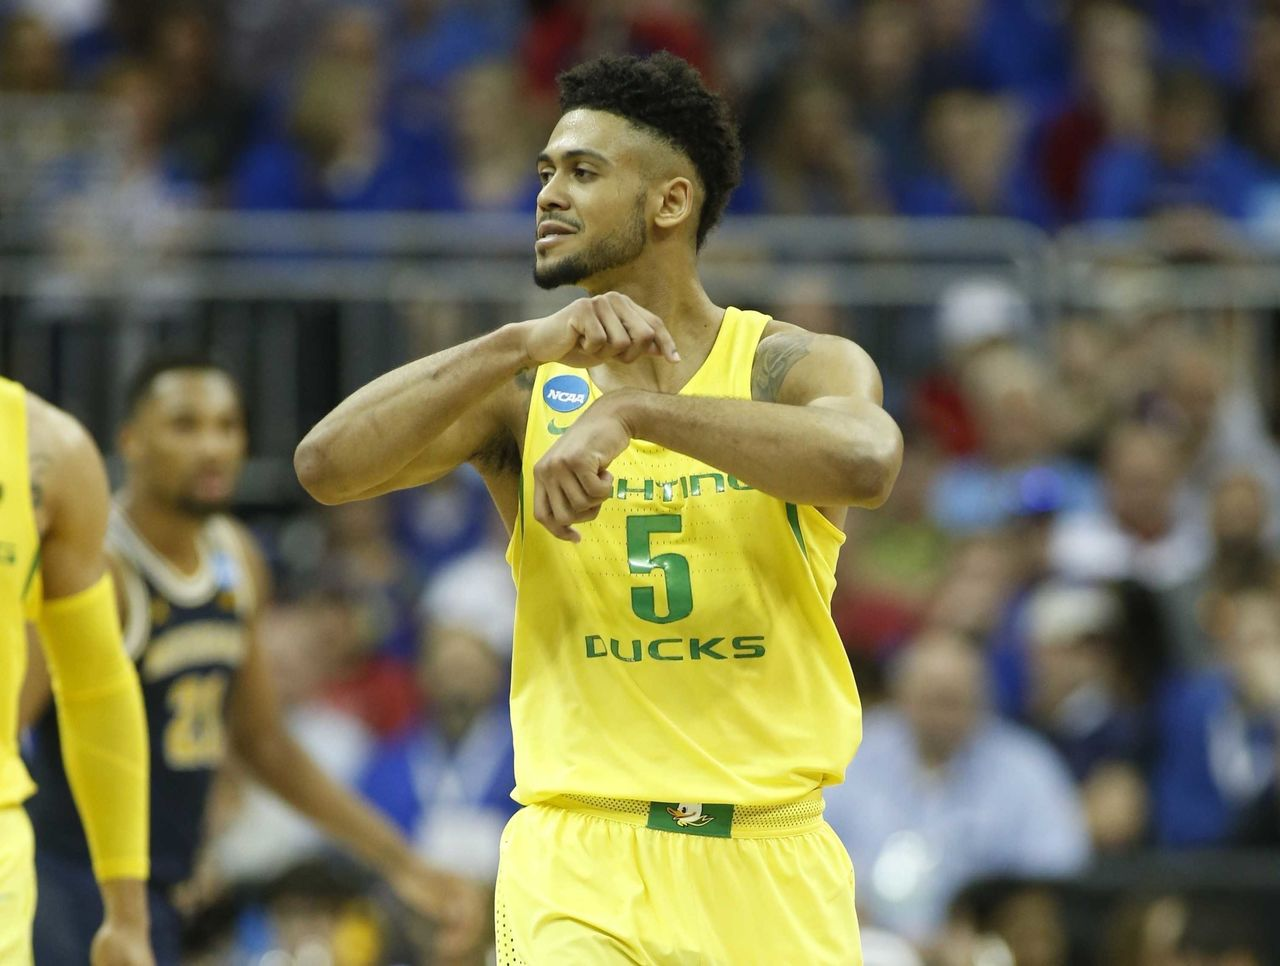 Cropped 2017 03 24t010955z 1502183503 nocid rtrmadp 3 ncaa basketball ncaa tournament midwest regional oregon vs michigan